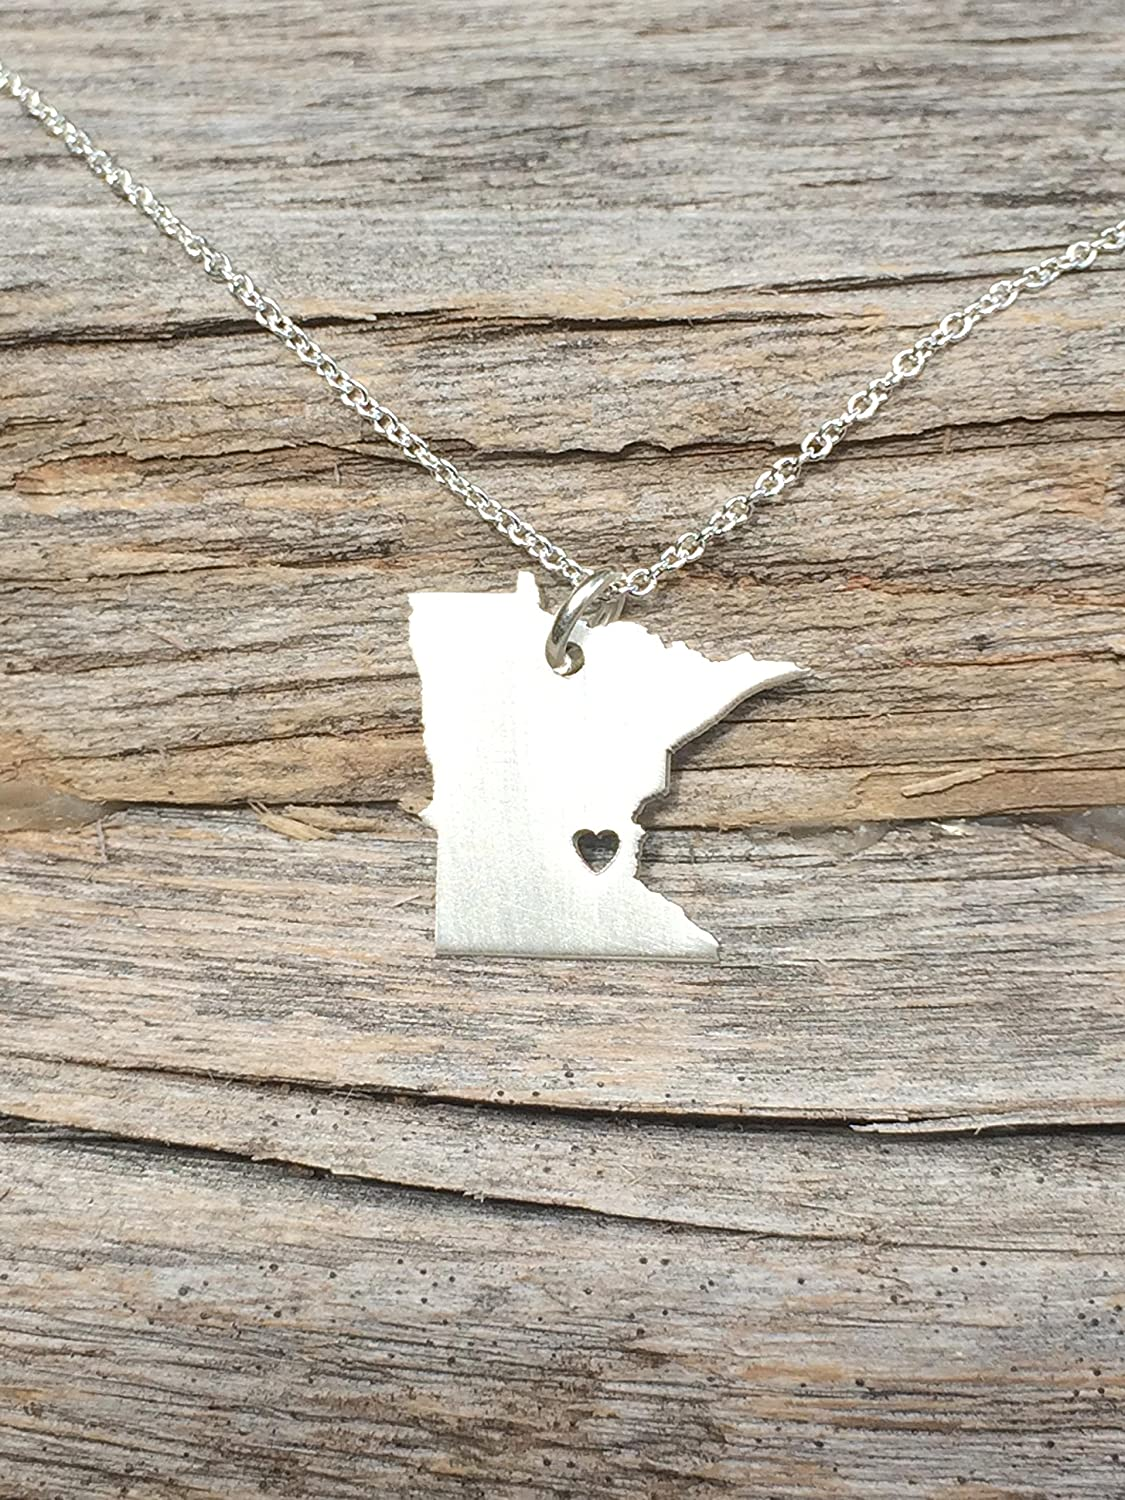 Minnesota Necklace - State Necklace - Personalized Necklace - Christmas Gift - Sterling Silver 14K Gold Filled Charm - Pendant